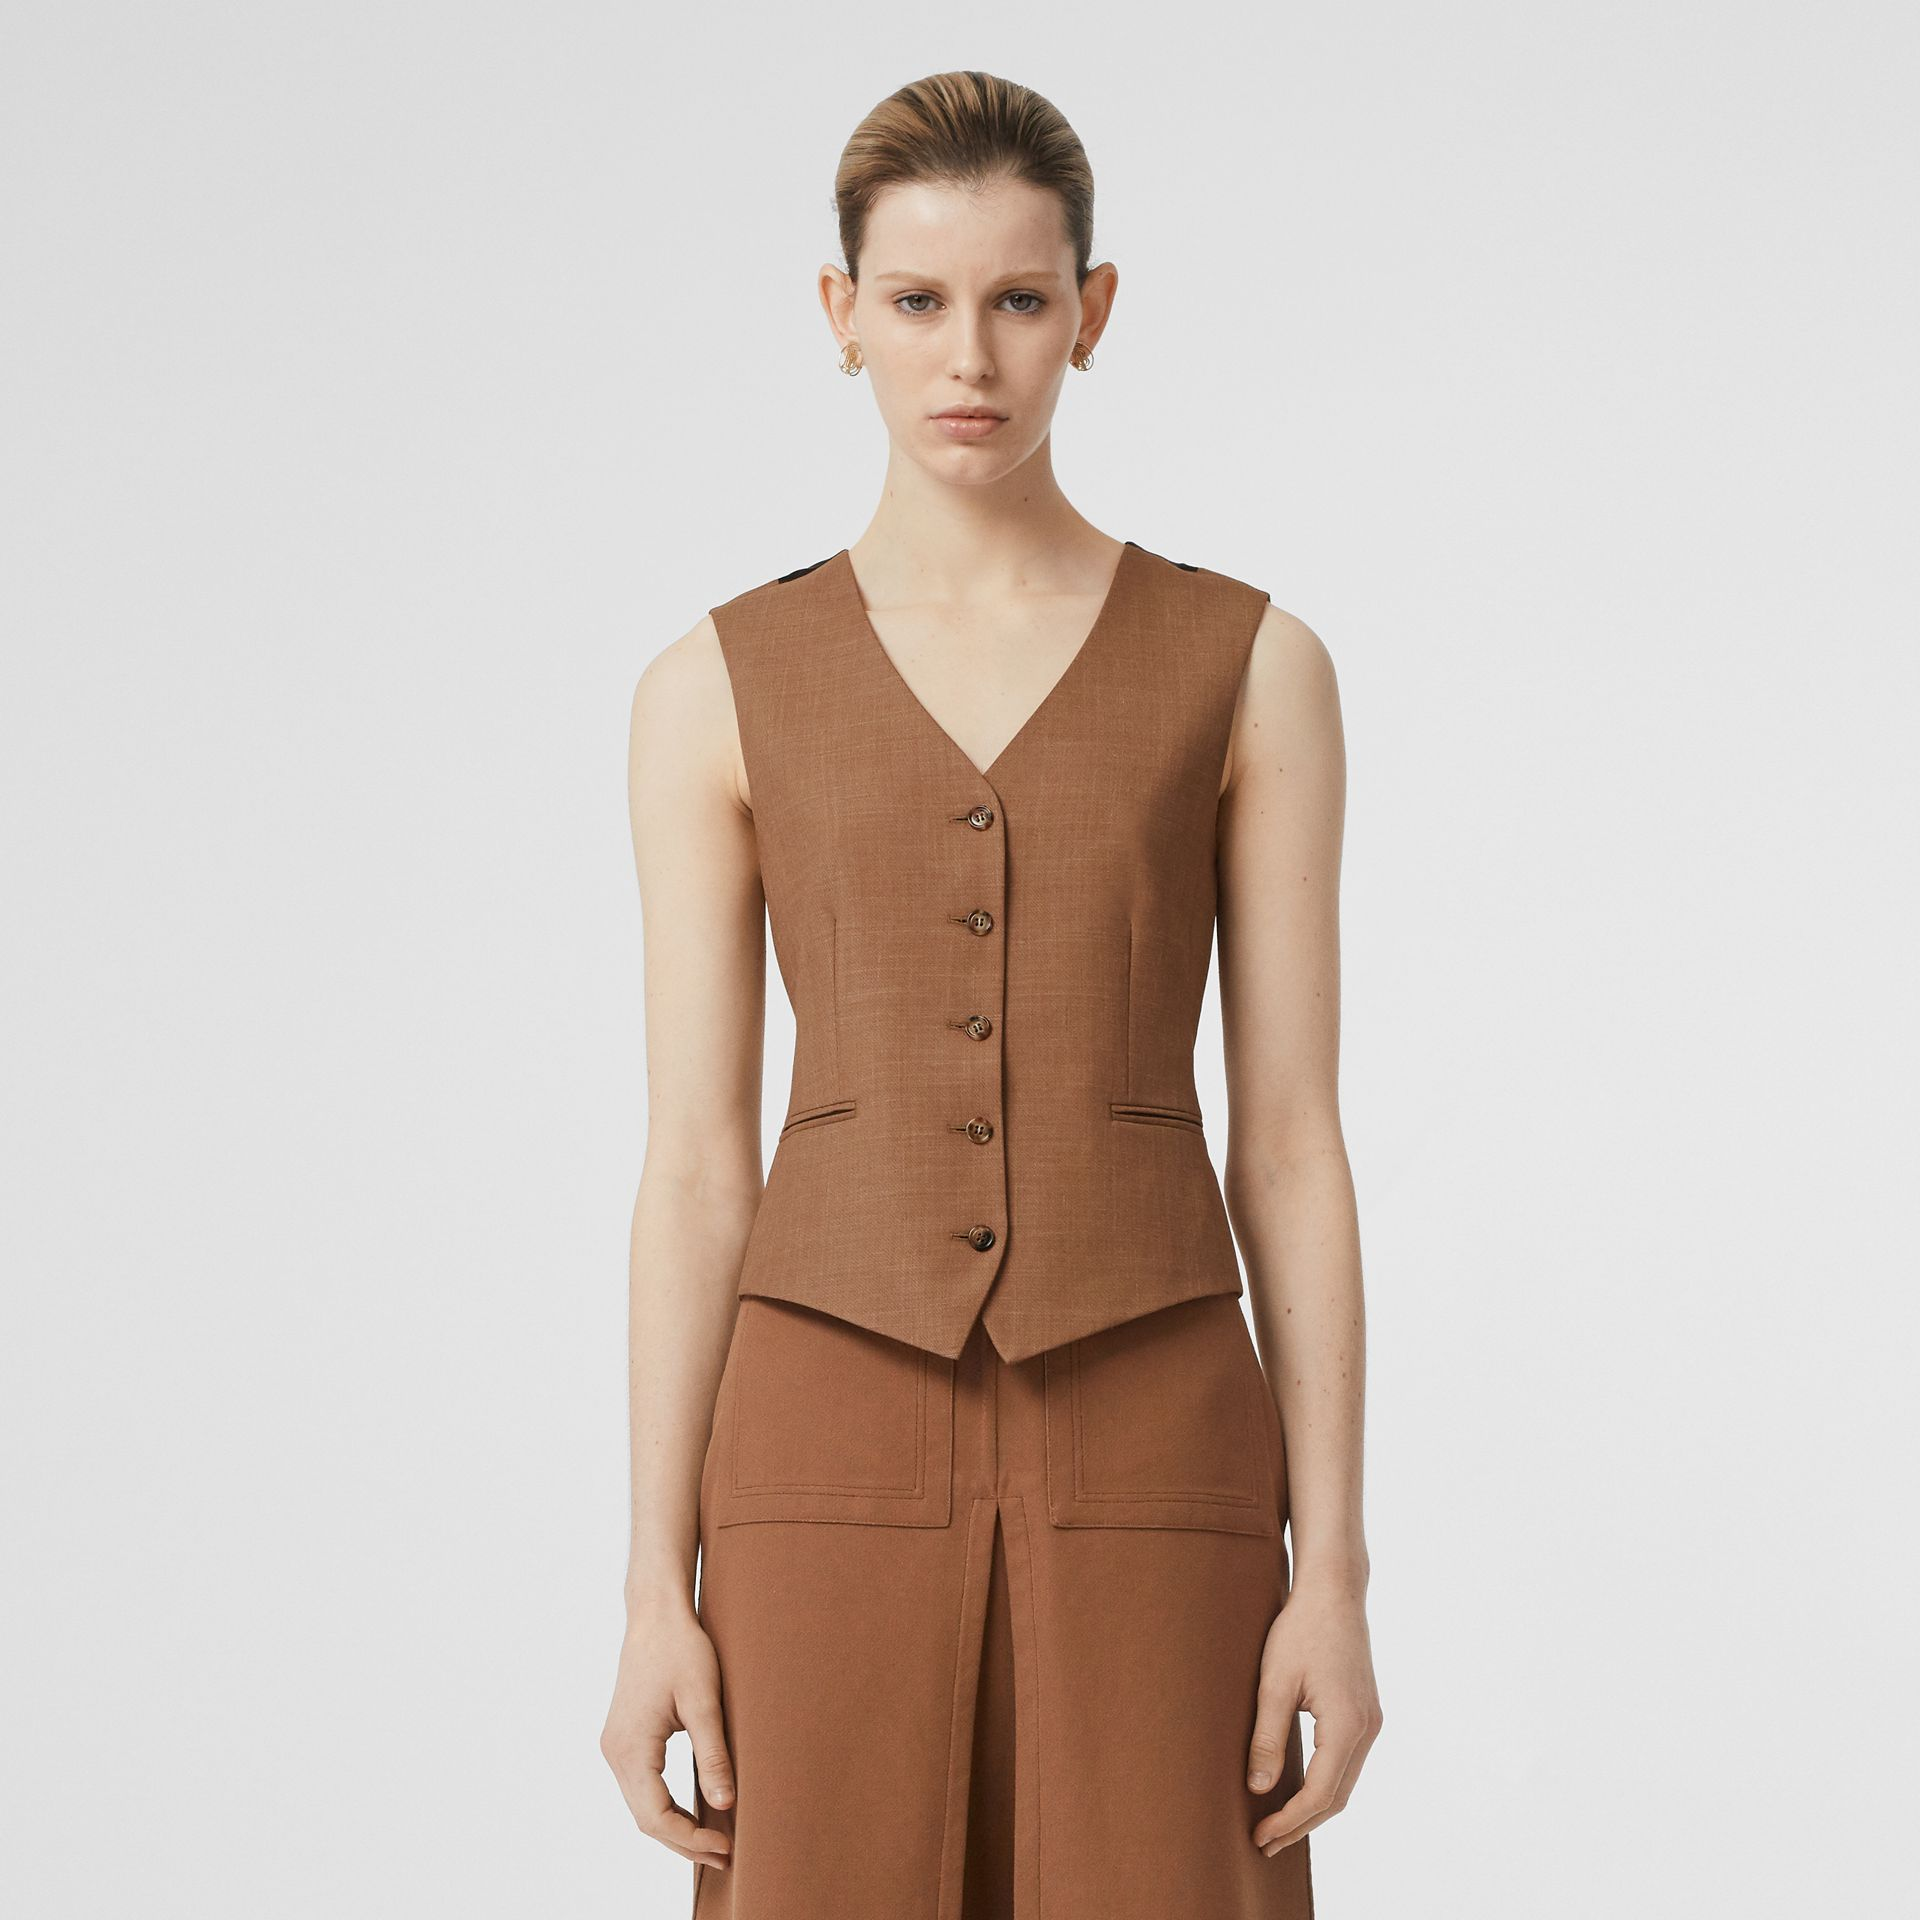 Satin Panel Mohair Wool Blend Tailored Waistcoat in Bronze - Women | Burberry - gallery image 6